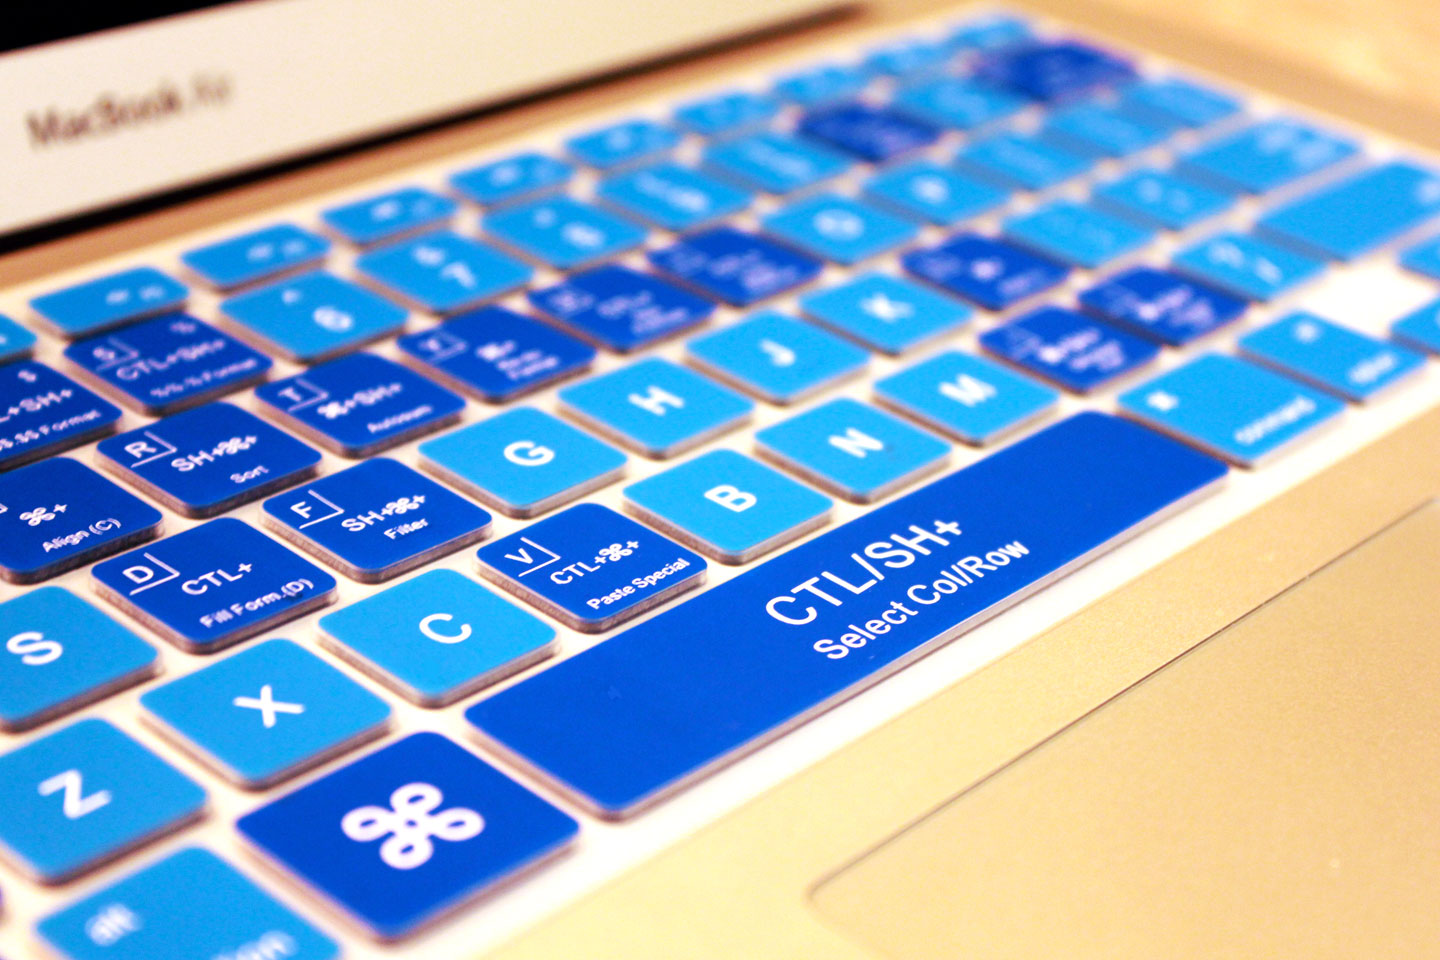 excel 2013 keyboard shortcuts for mac